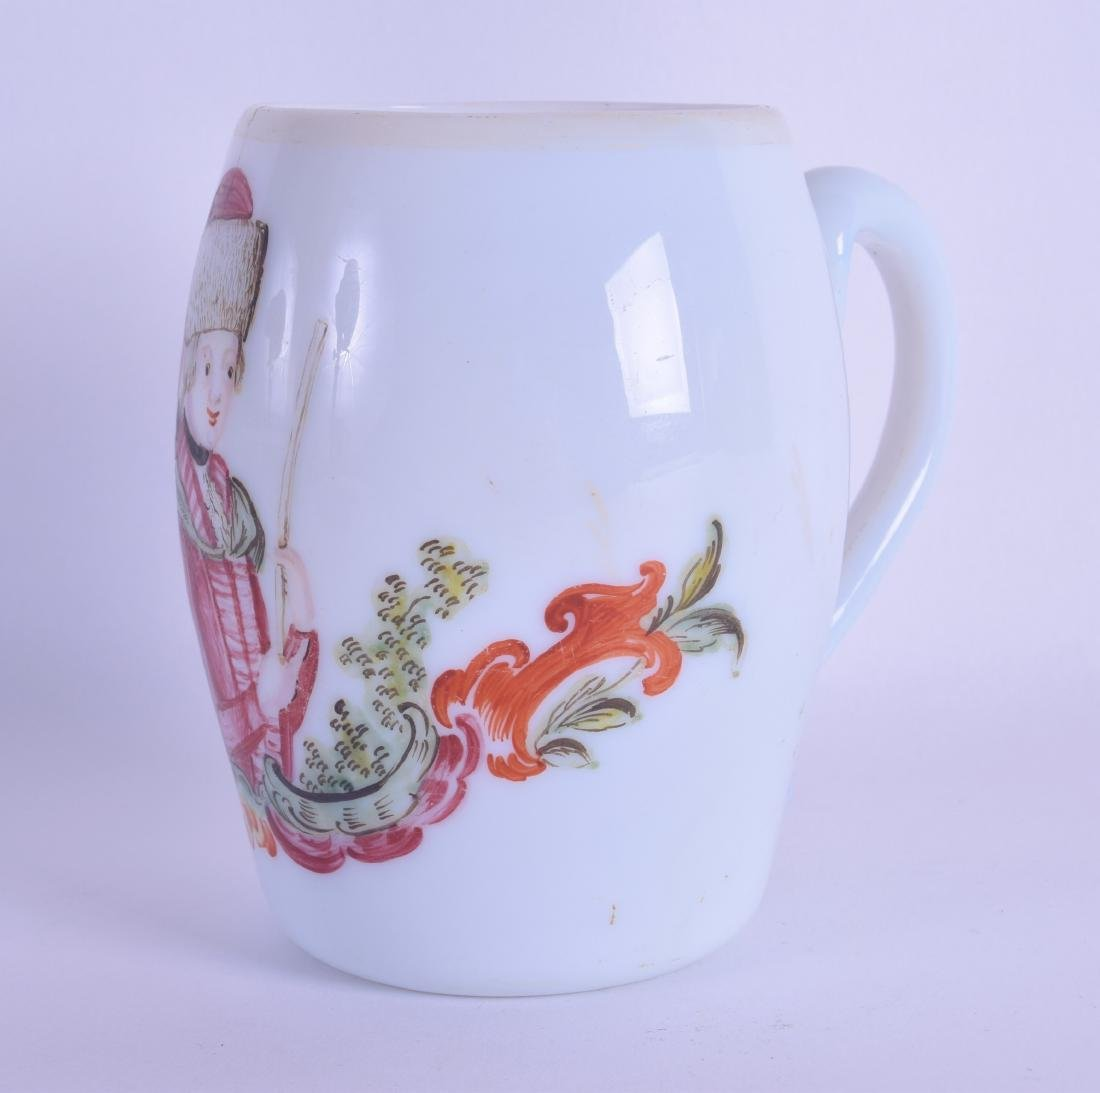 A RARE 18TH CENTURY BOHEMIAN MILK GLASS MUG painted